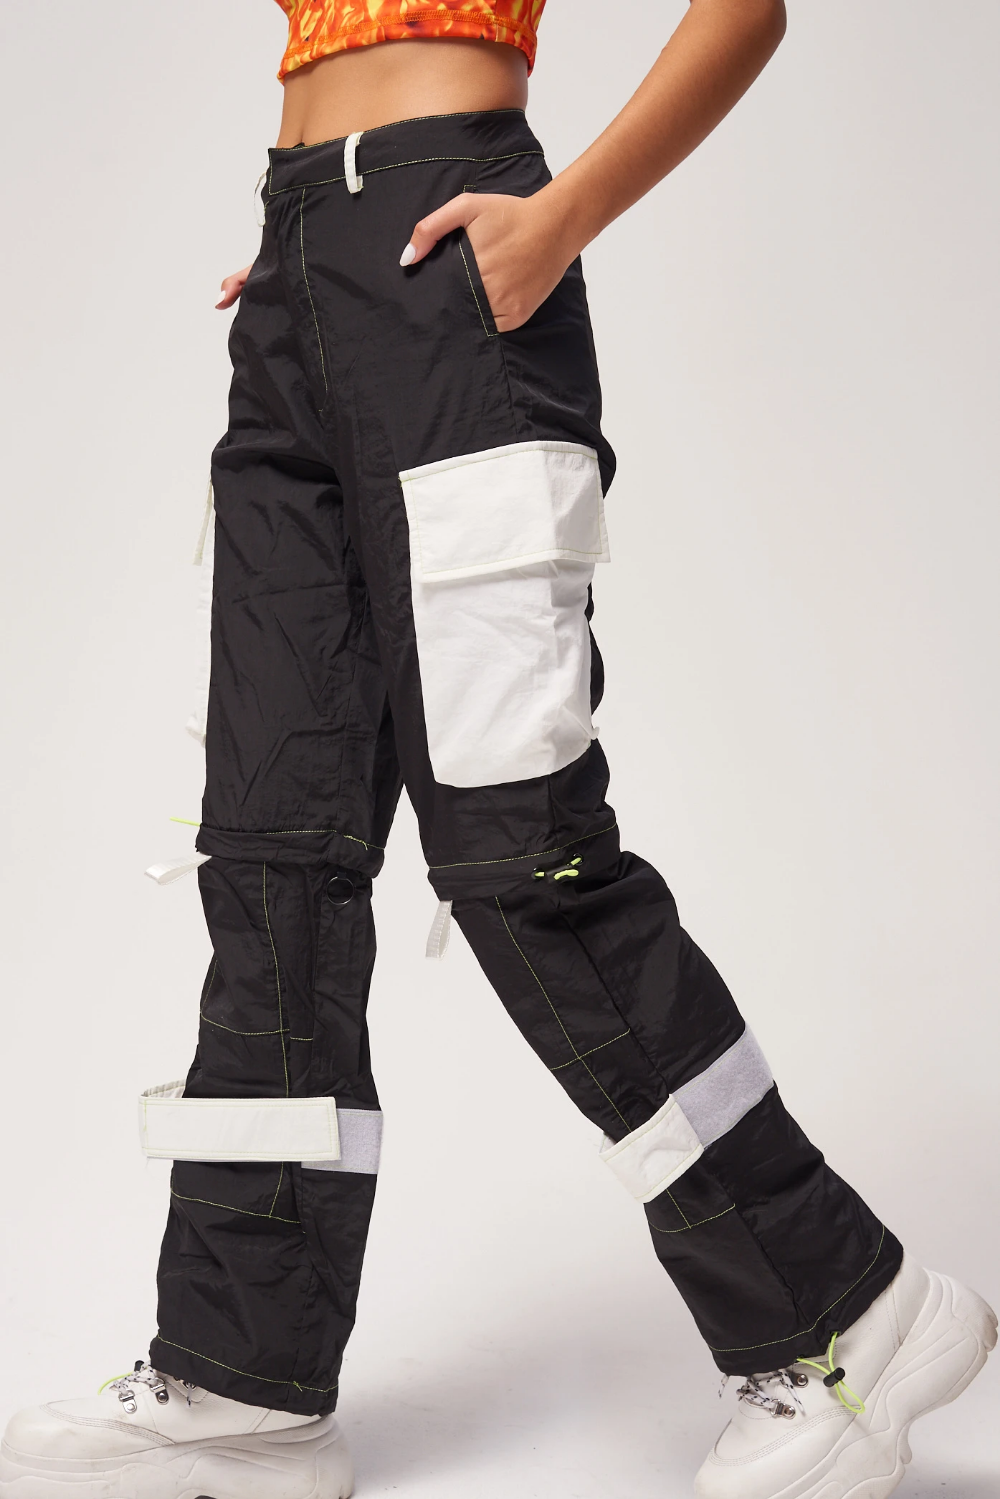 Black Oversized Cargo Trousers With Neon Stitching Jaded London Cargo Trousers Cargo Pants Outfit Black Cargo Pants